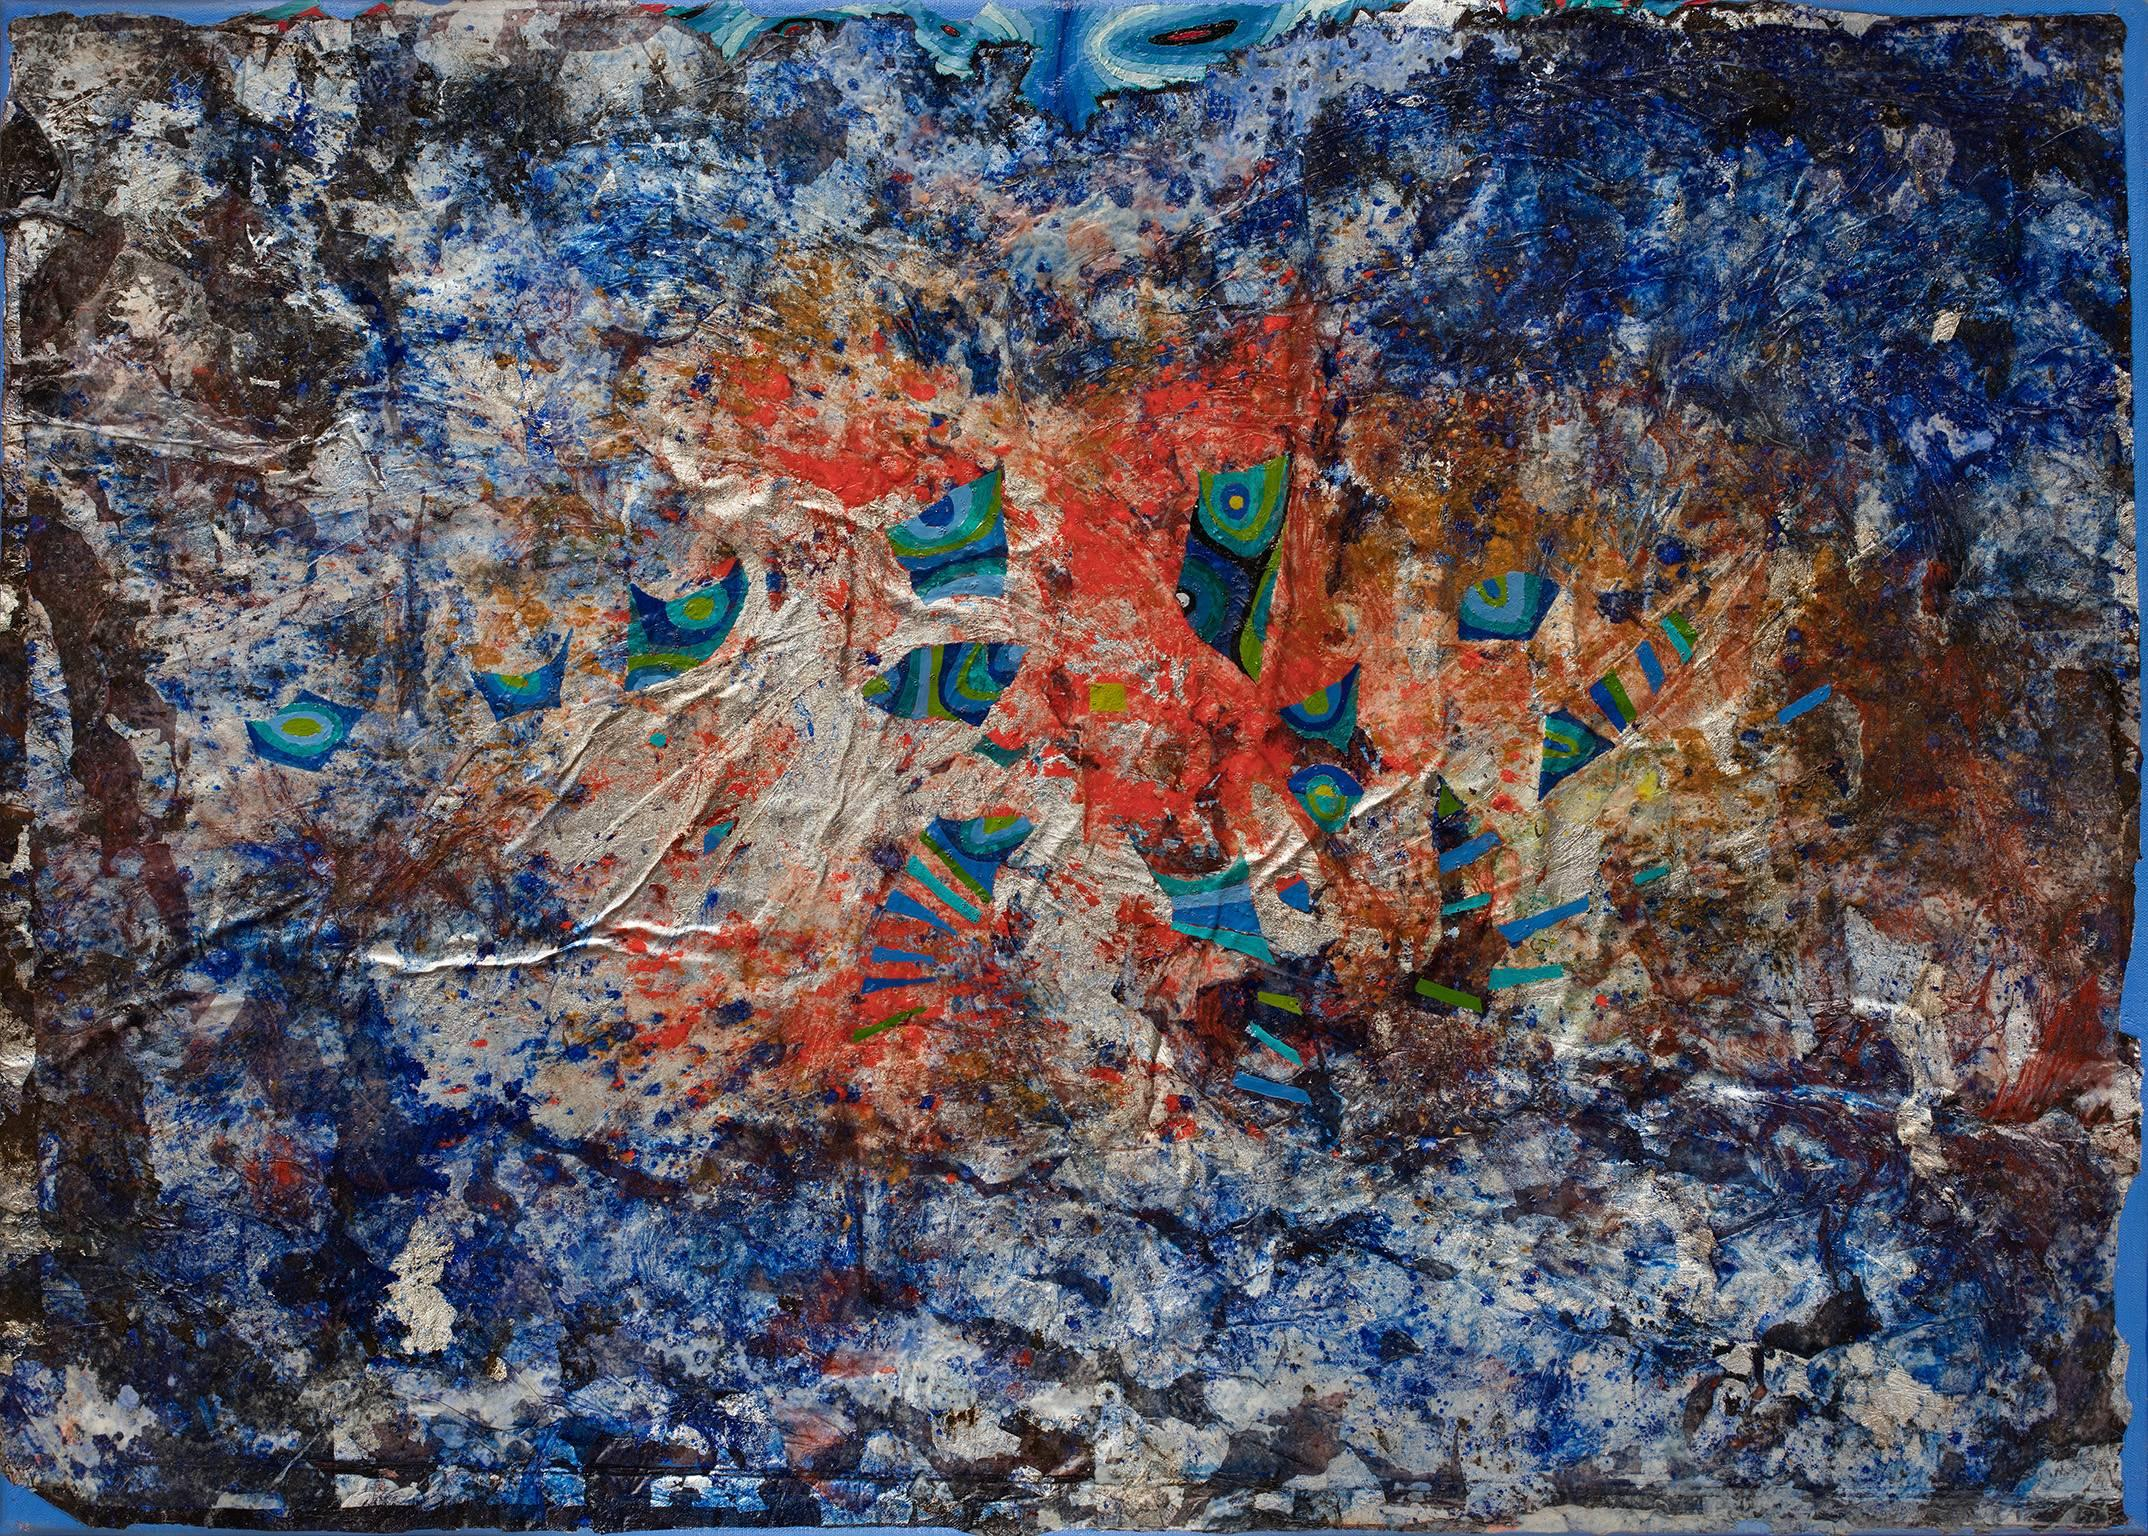 In Search of Light - Abstract Blue, Red and Silver Oil Painting